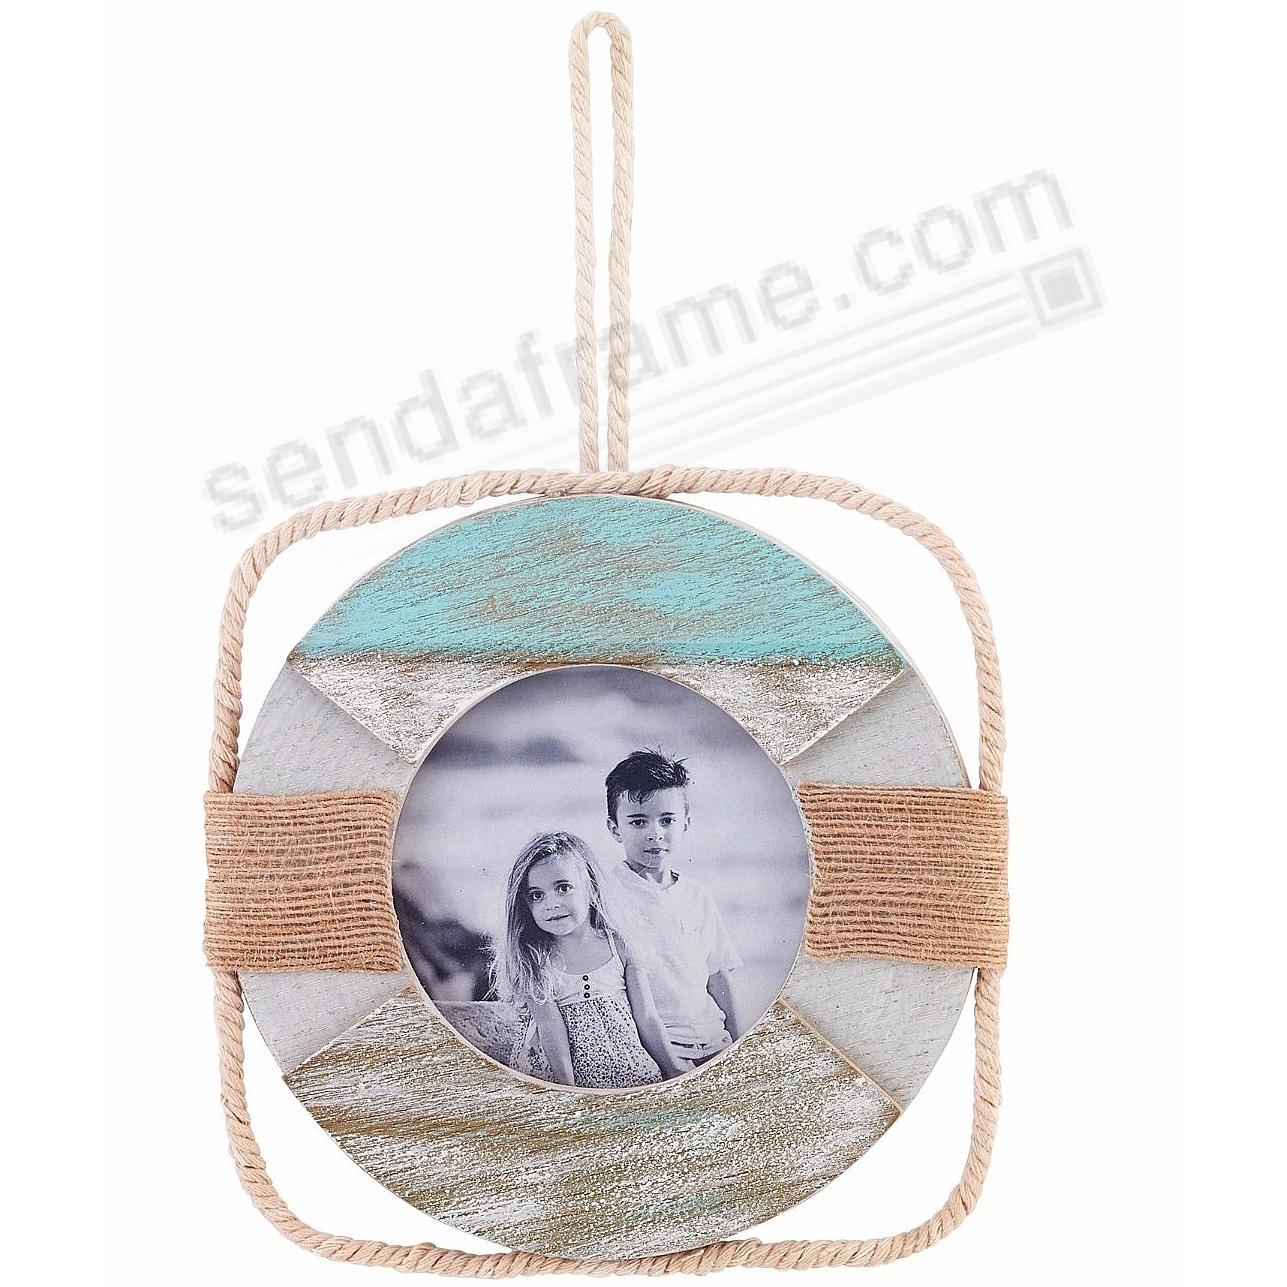 SANDY BEACH LIFE RING Picture 4x4 Frame by Lawrence®